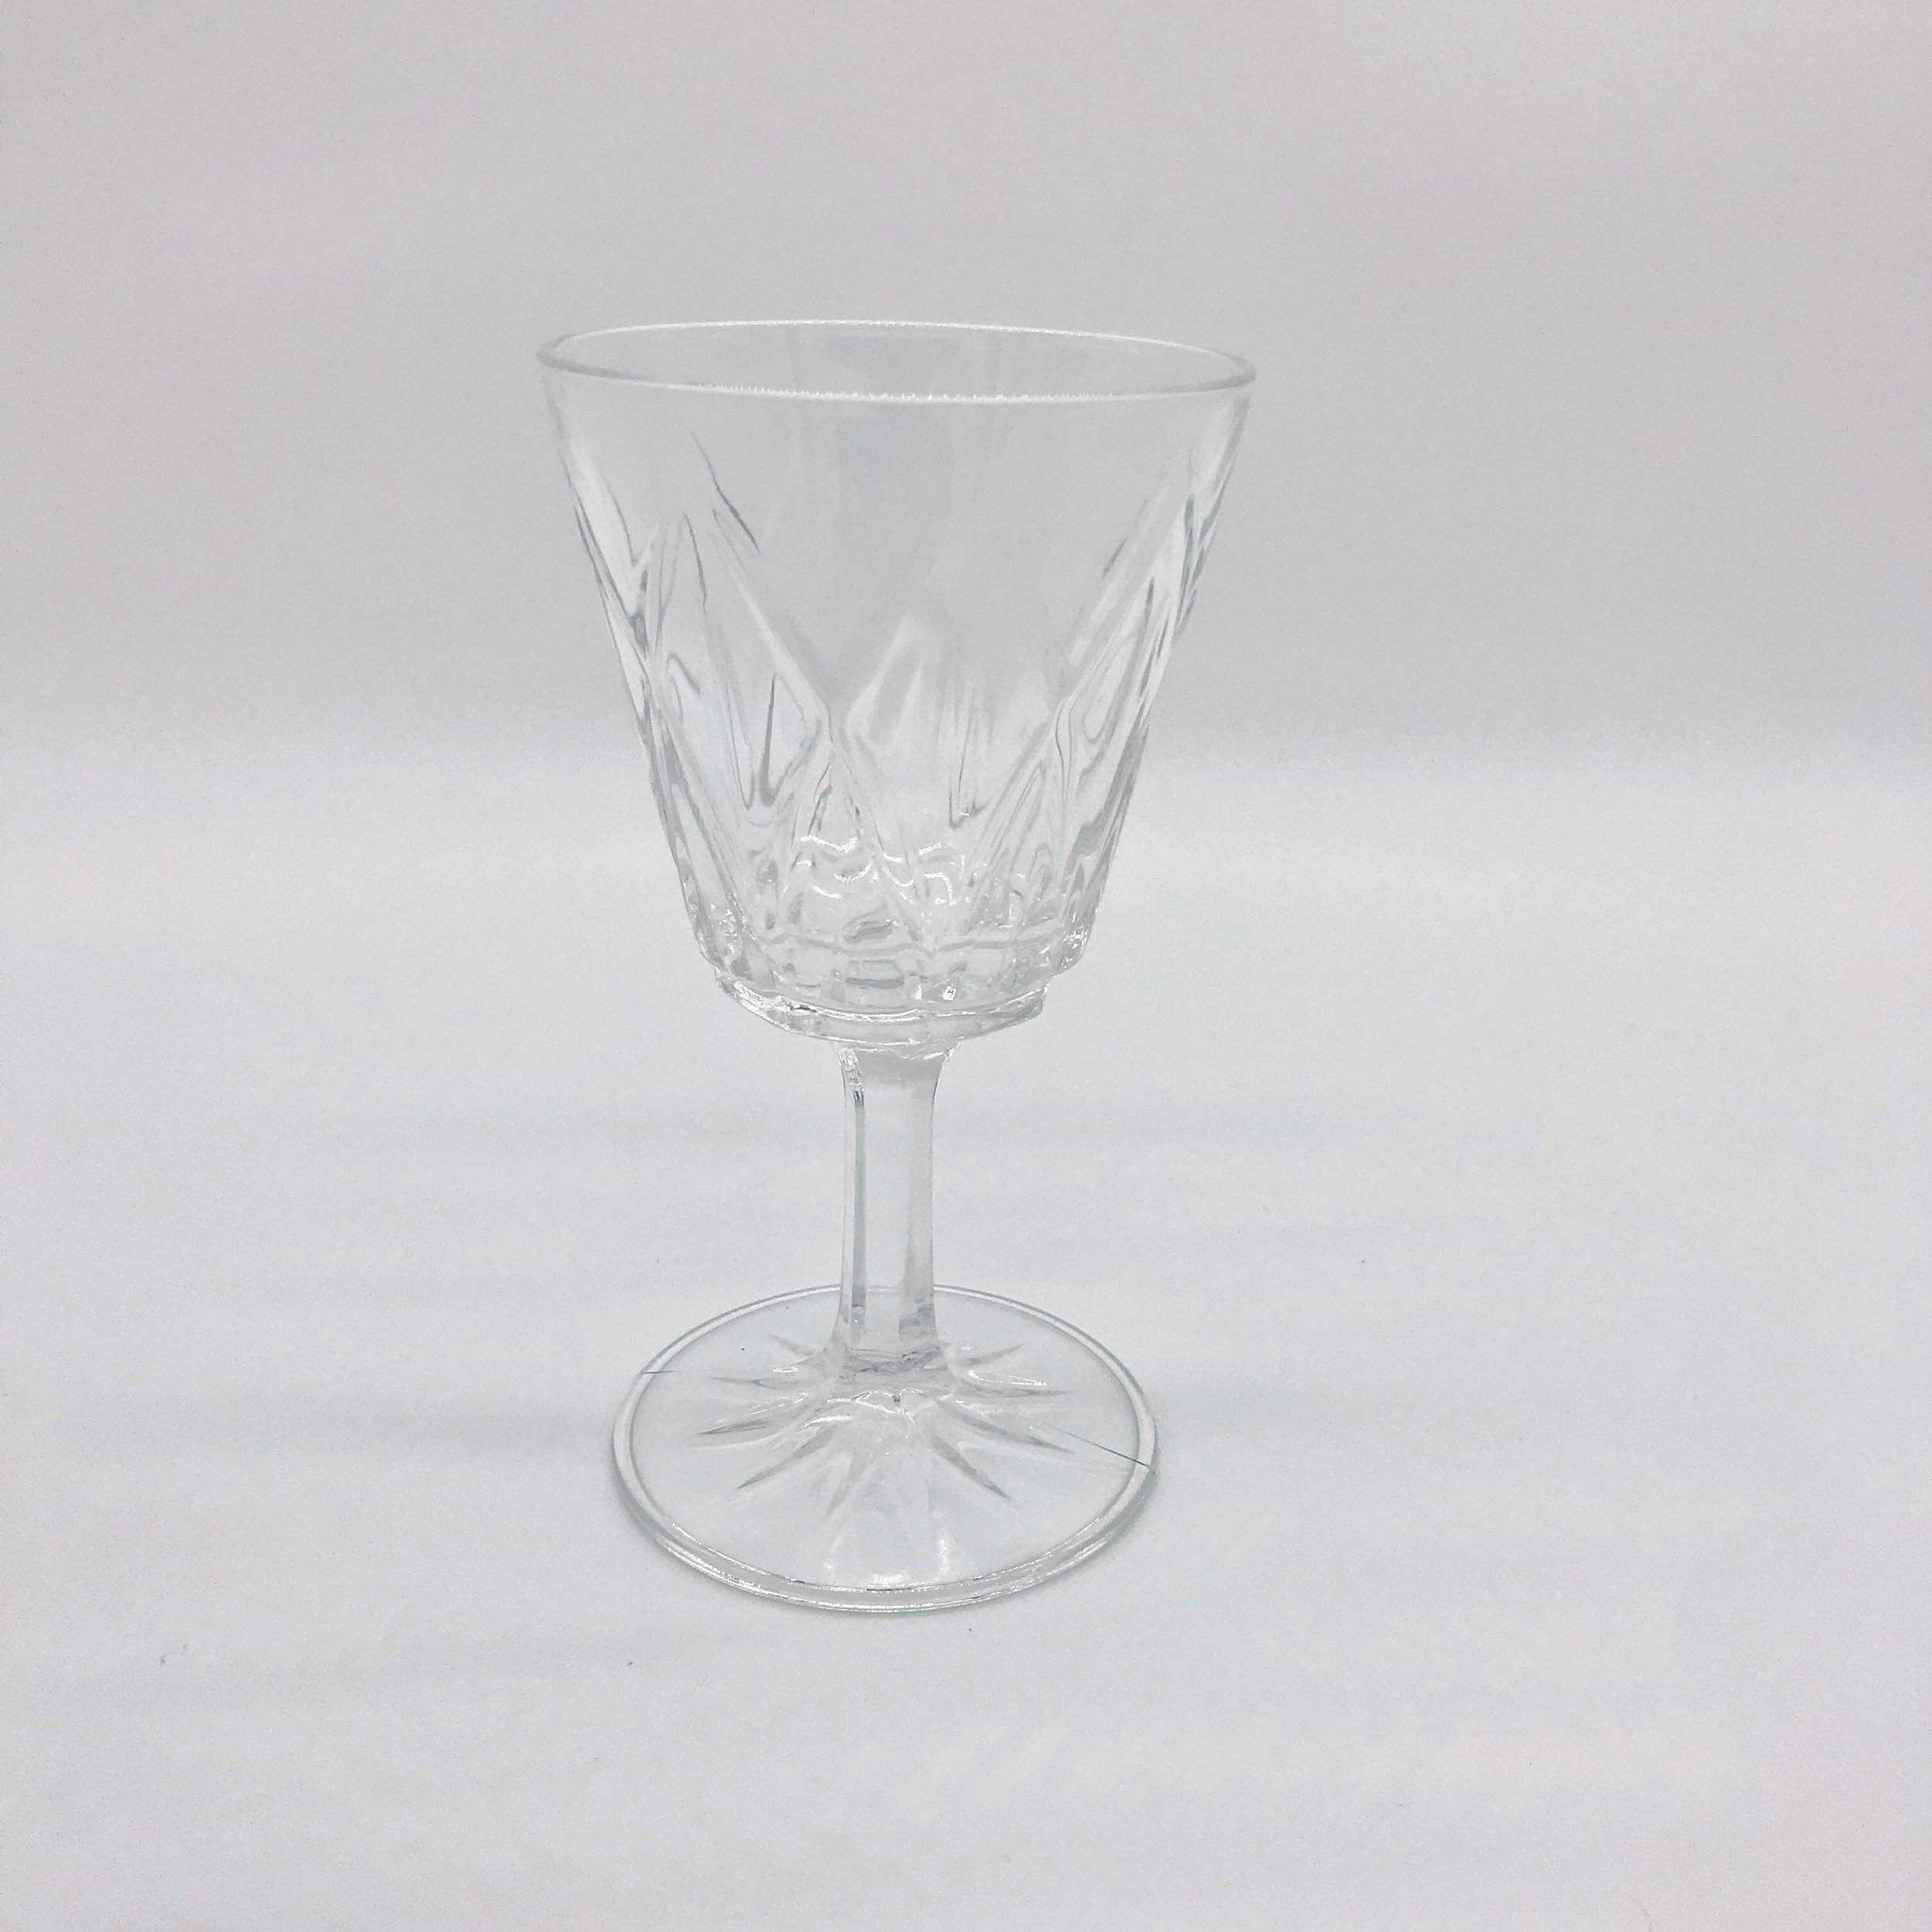 Vintage glass (small)  Price: $2.00  Qty: 6